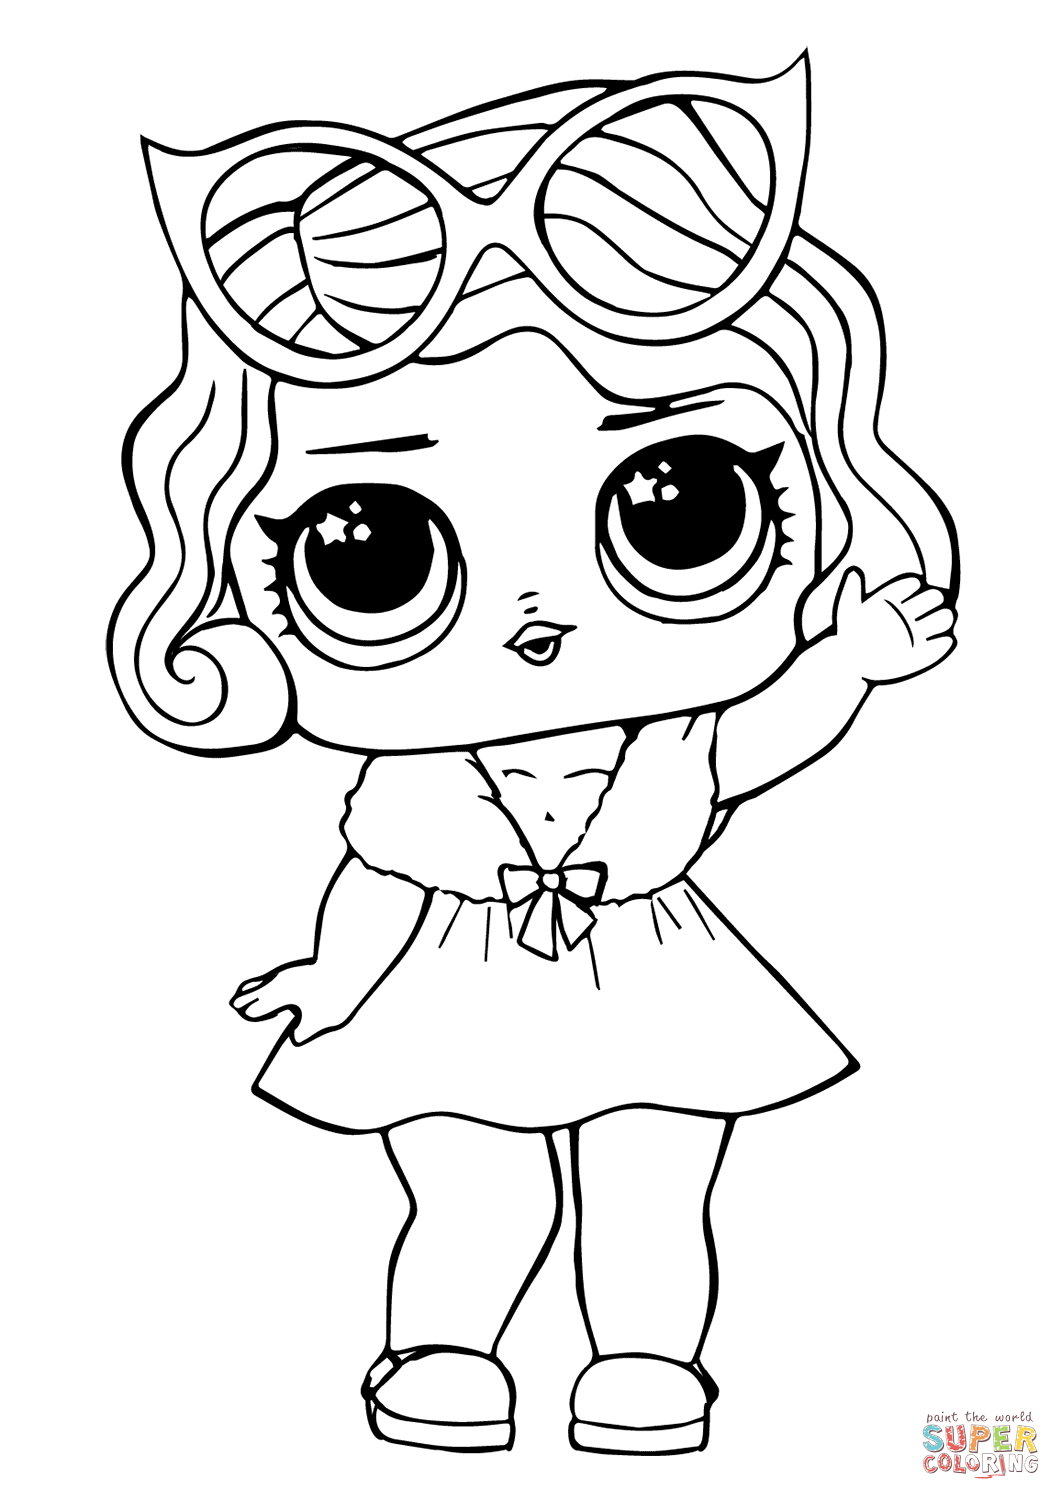 Printable Coloring Pages Free Printable Coloring Pages Lol Best